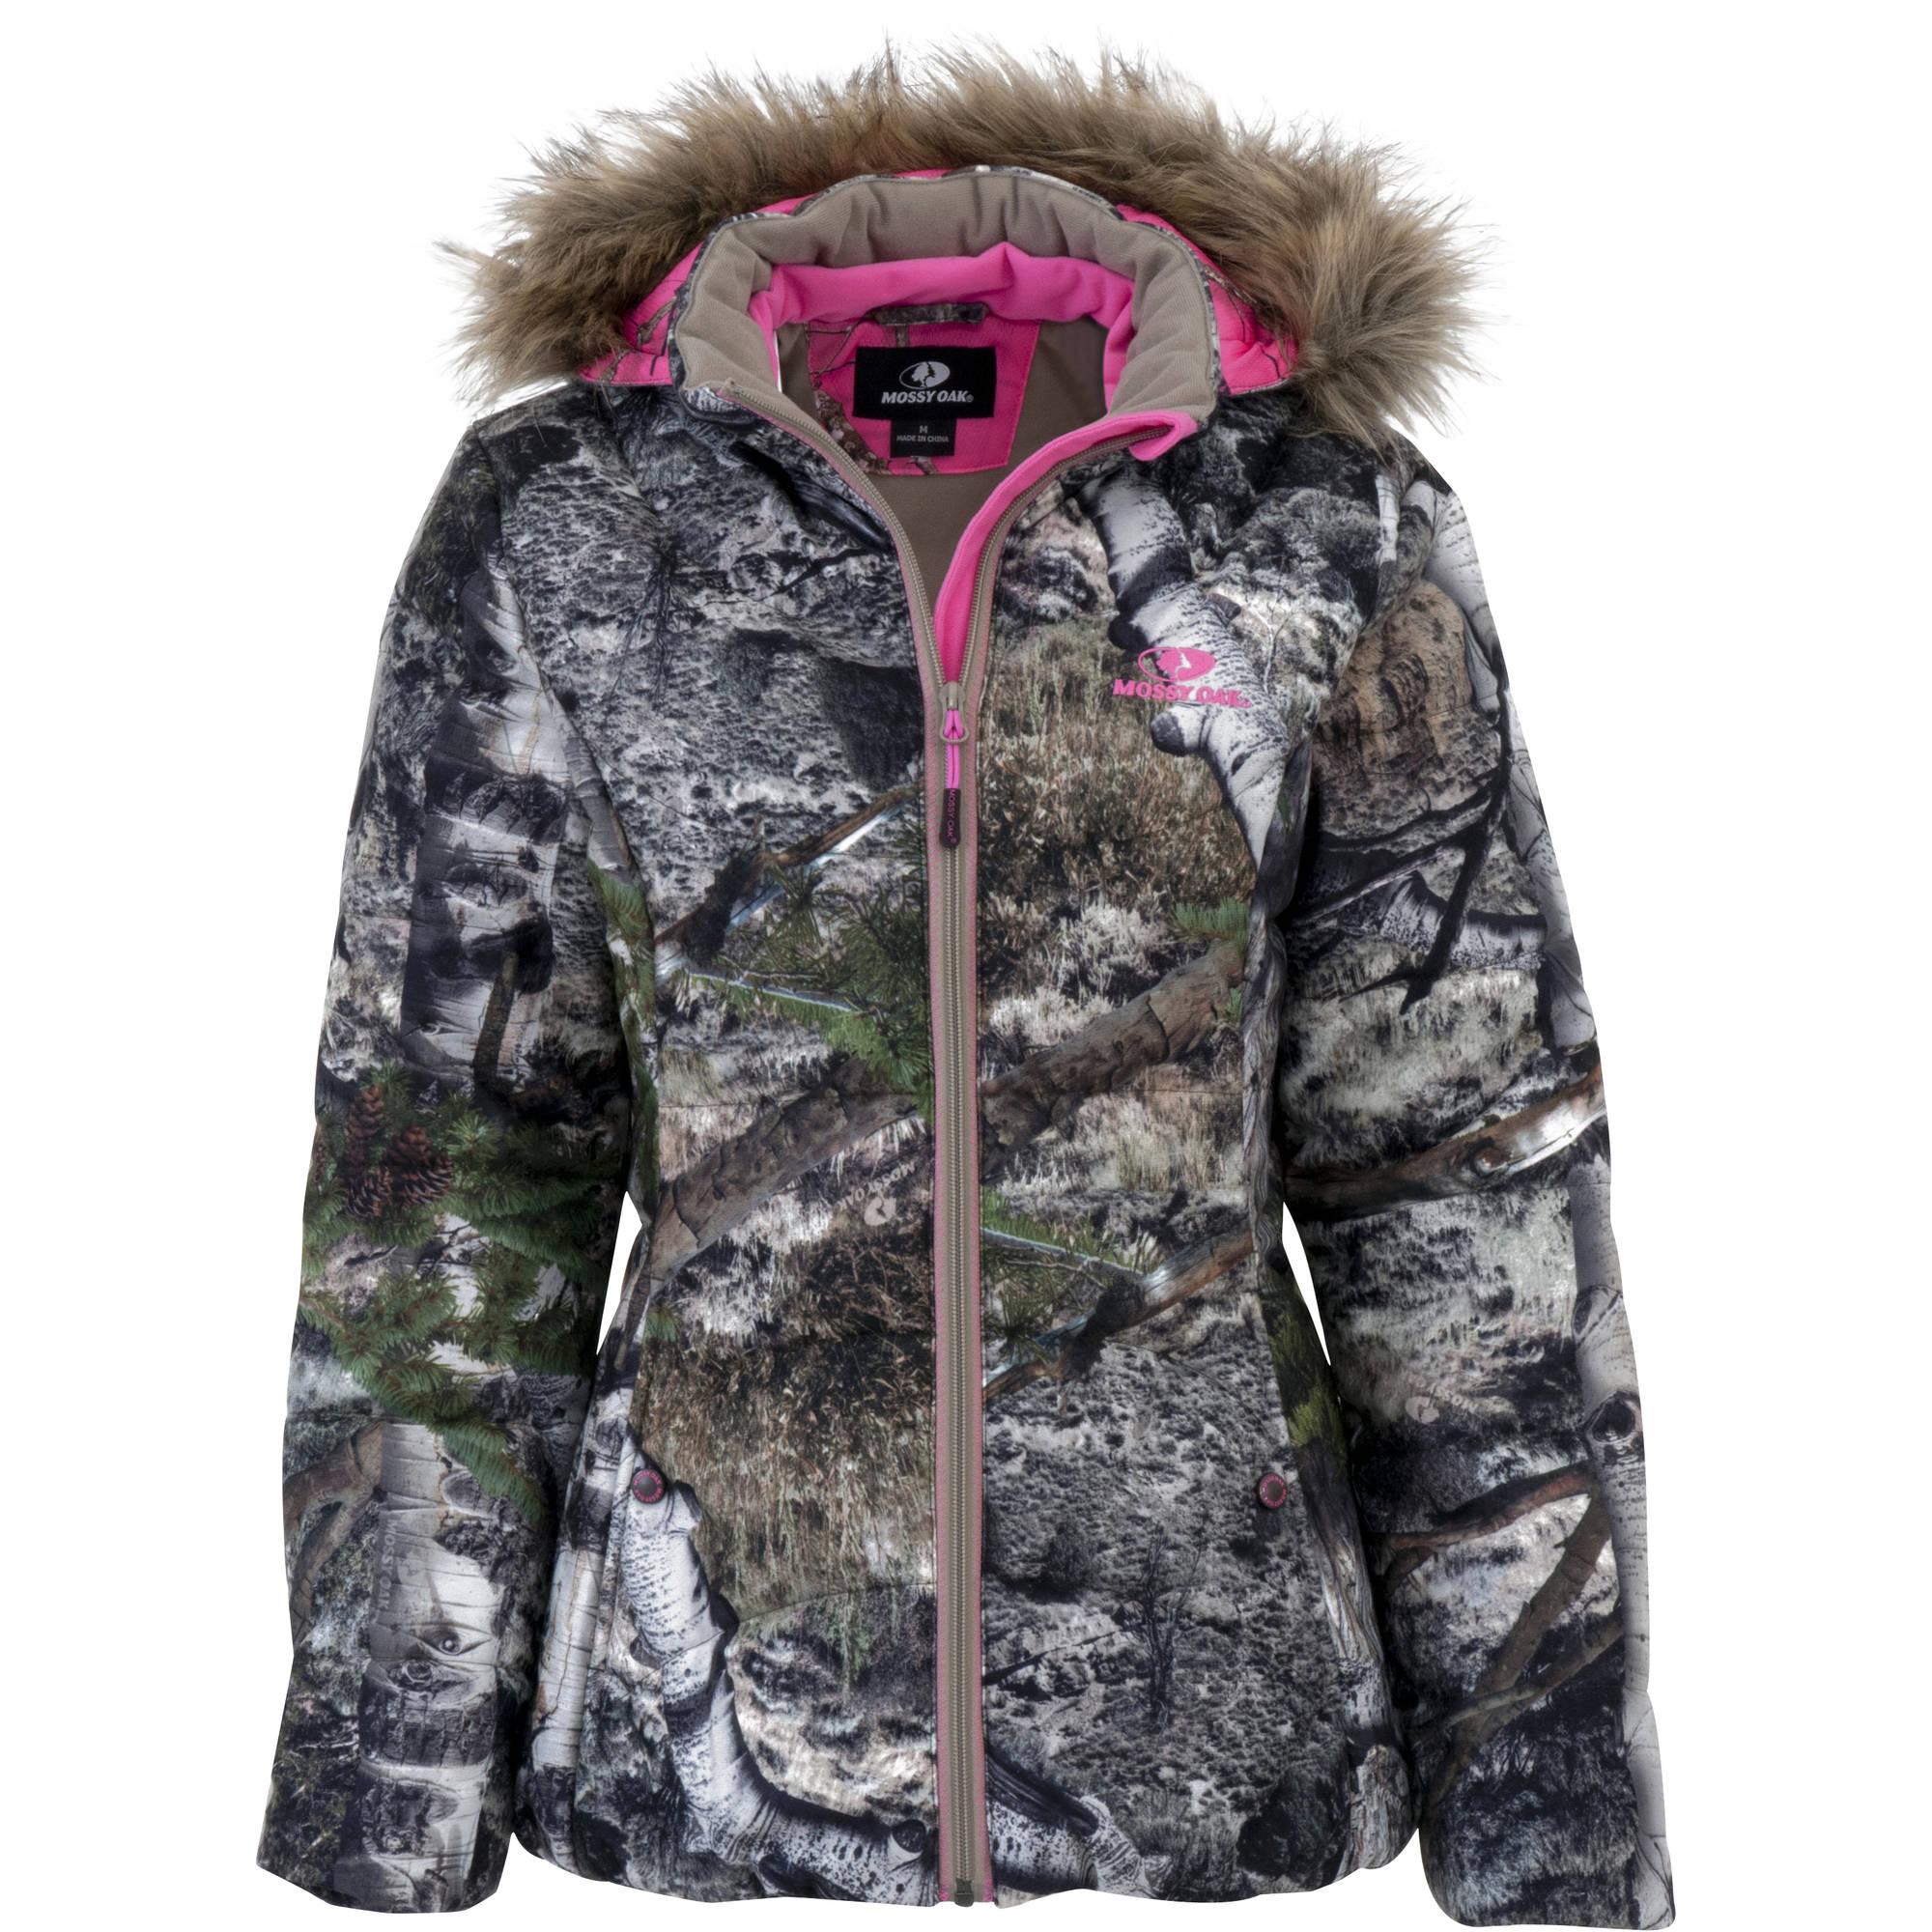 Womens Jacket Bubble, Mossy Oak Mountain Country by